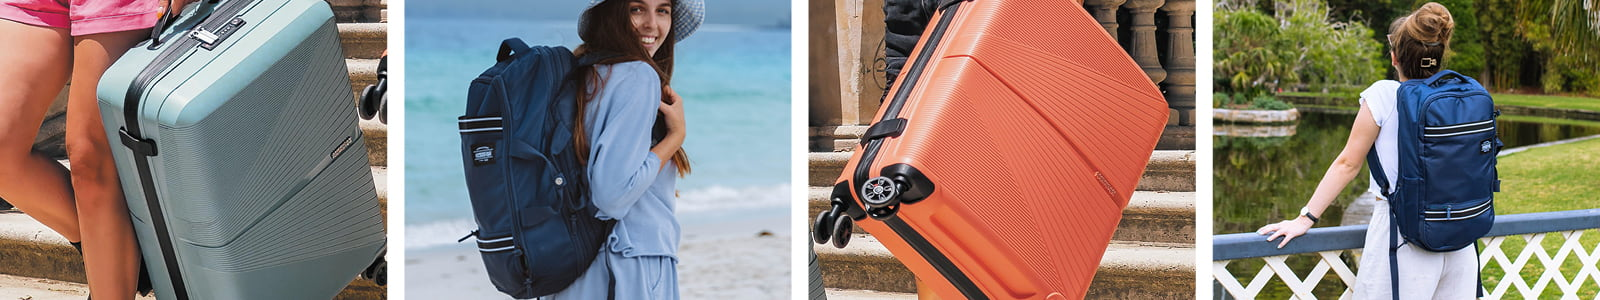 American Tourister's banner